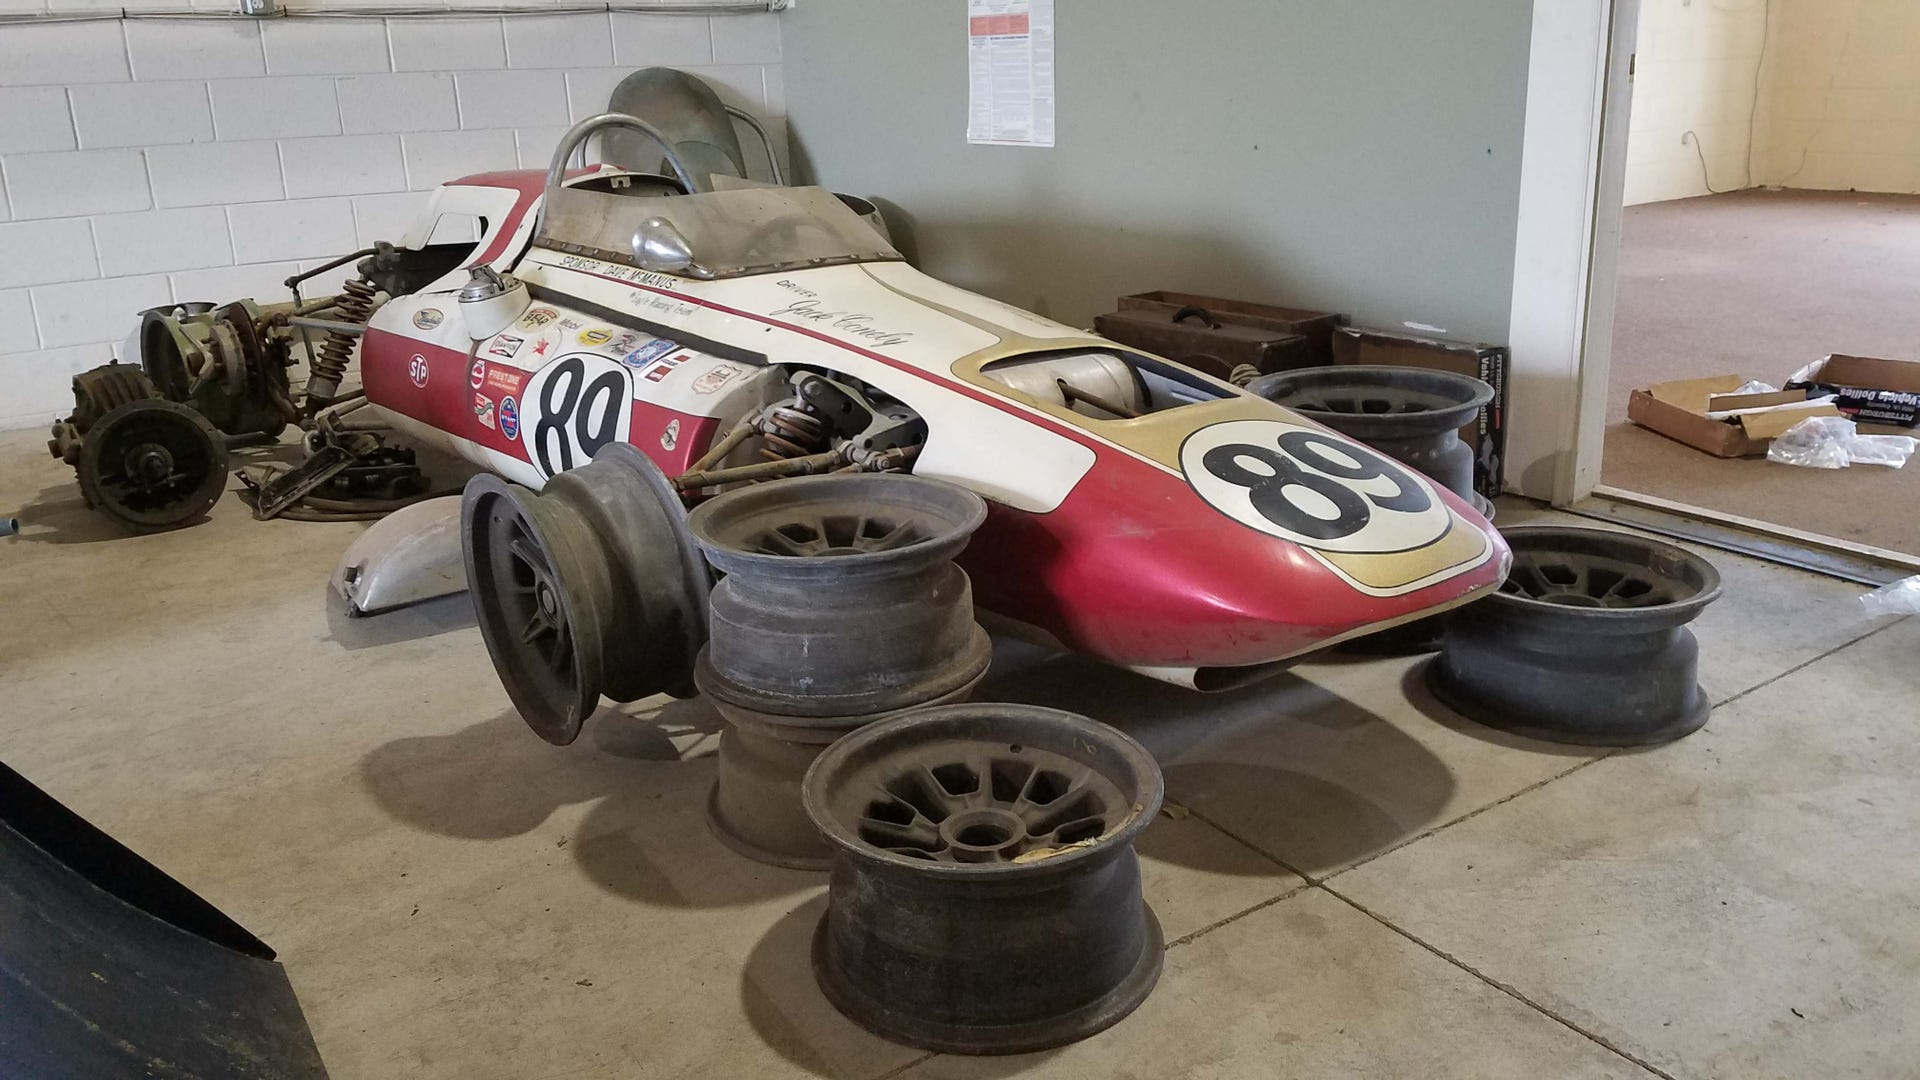 """Jack """"The Brighton Bandit"""" Conely's race cars being auctioned 11f2ea54-f614-418a-b451-e0a5d0511b7e-conely_89-indycar"""